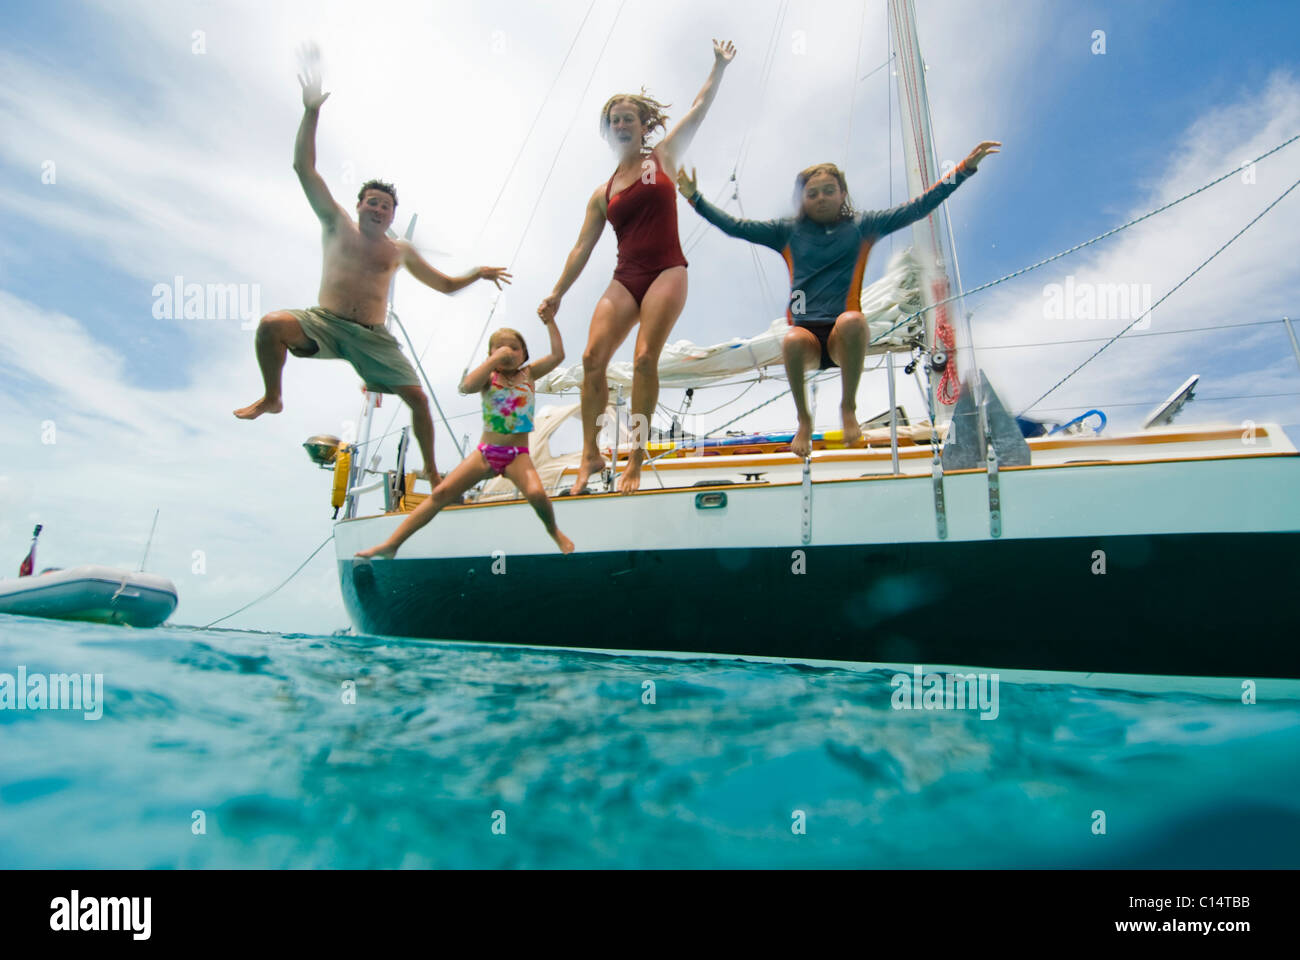 A family jumping off their boat - Stock Image